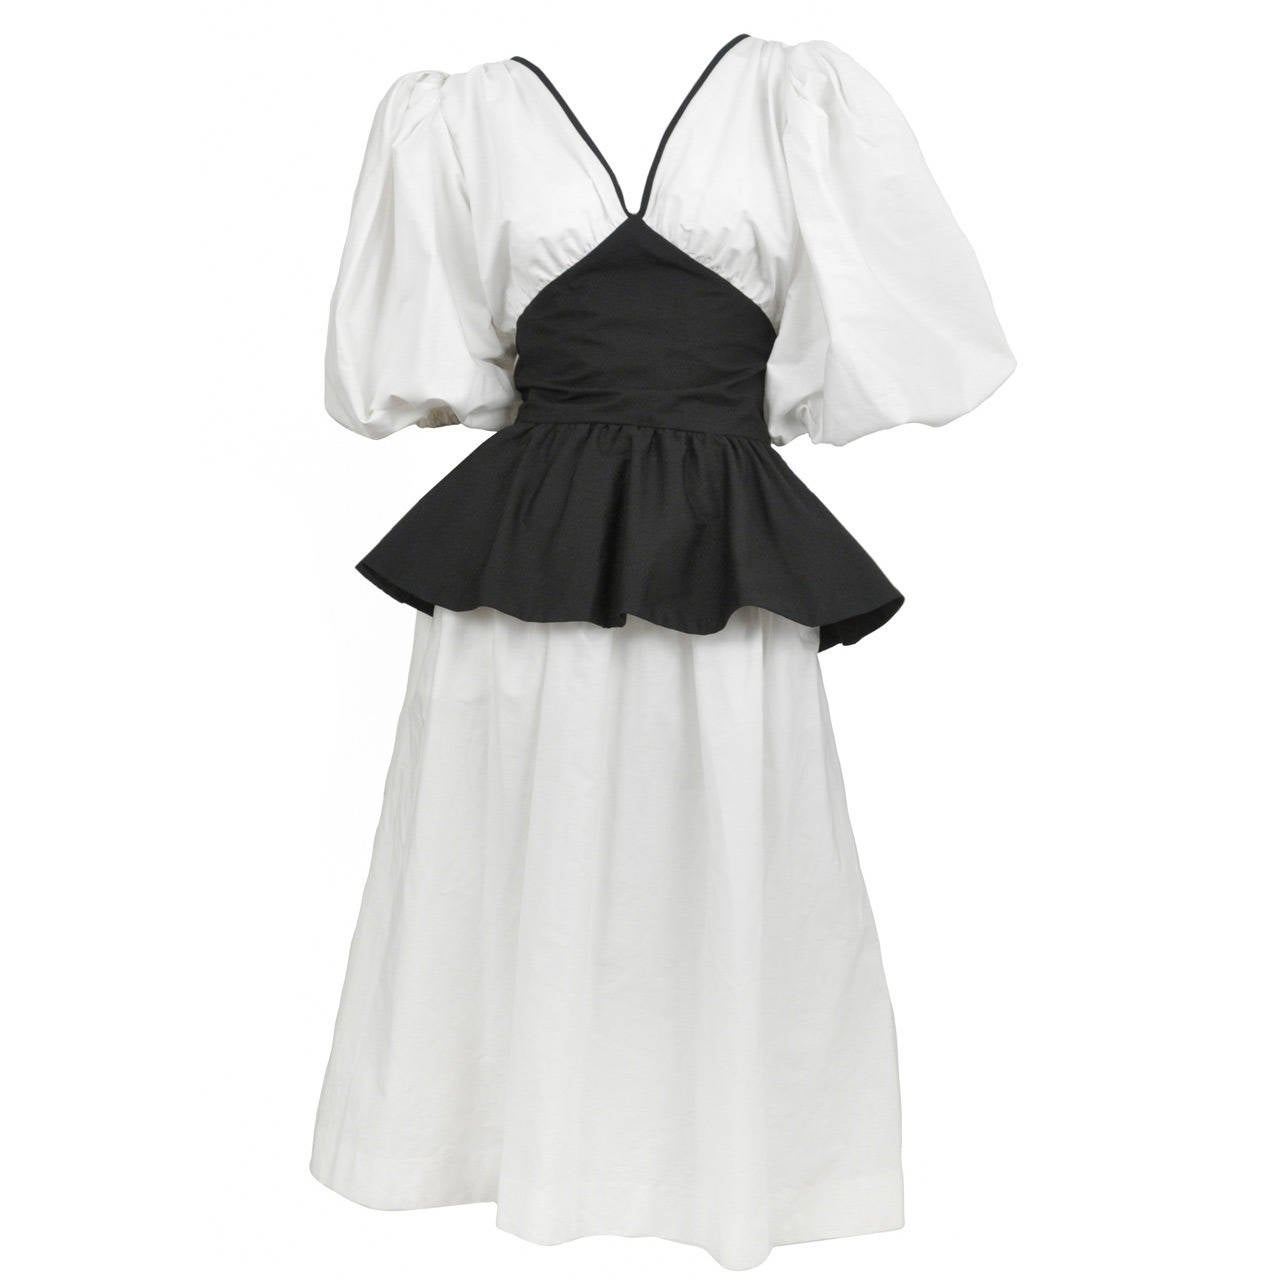 Yves Saint Laurent Black & White Peasant Dress 1